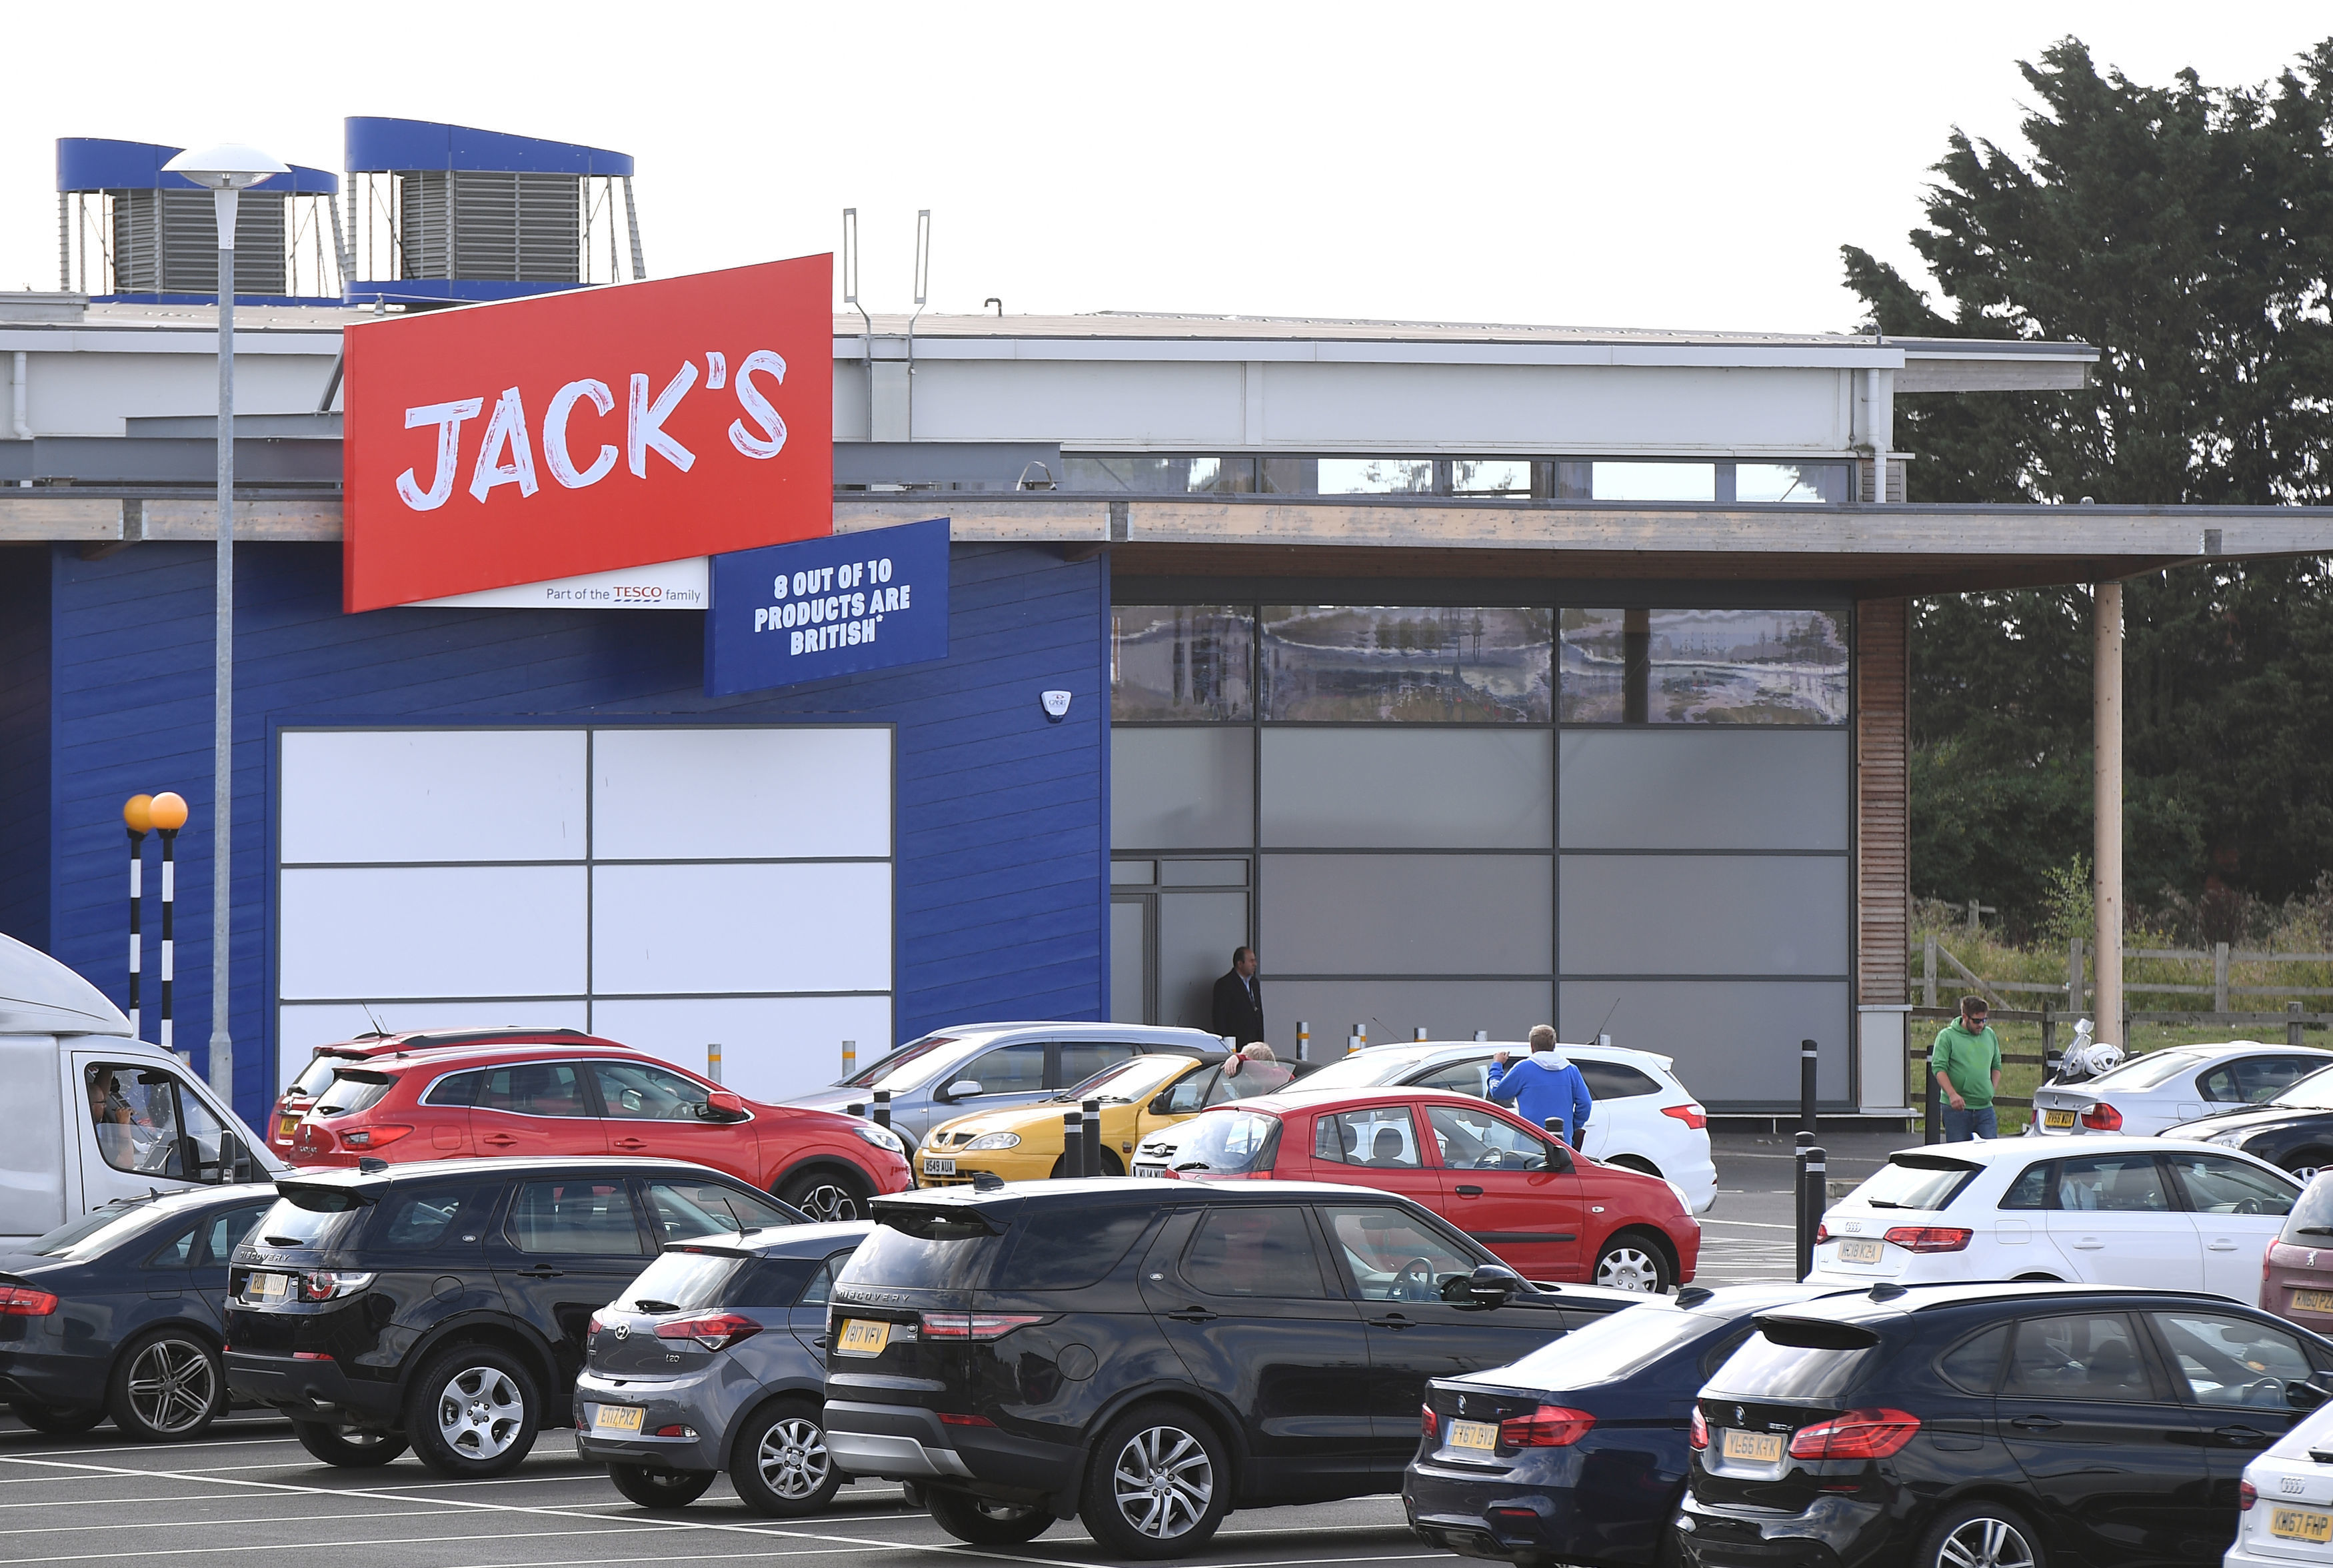 Tesco hurts Lidl, Aldi with 1st Jack's store